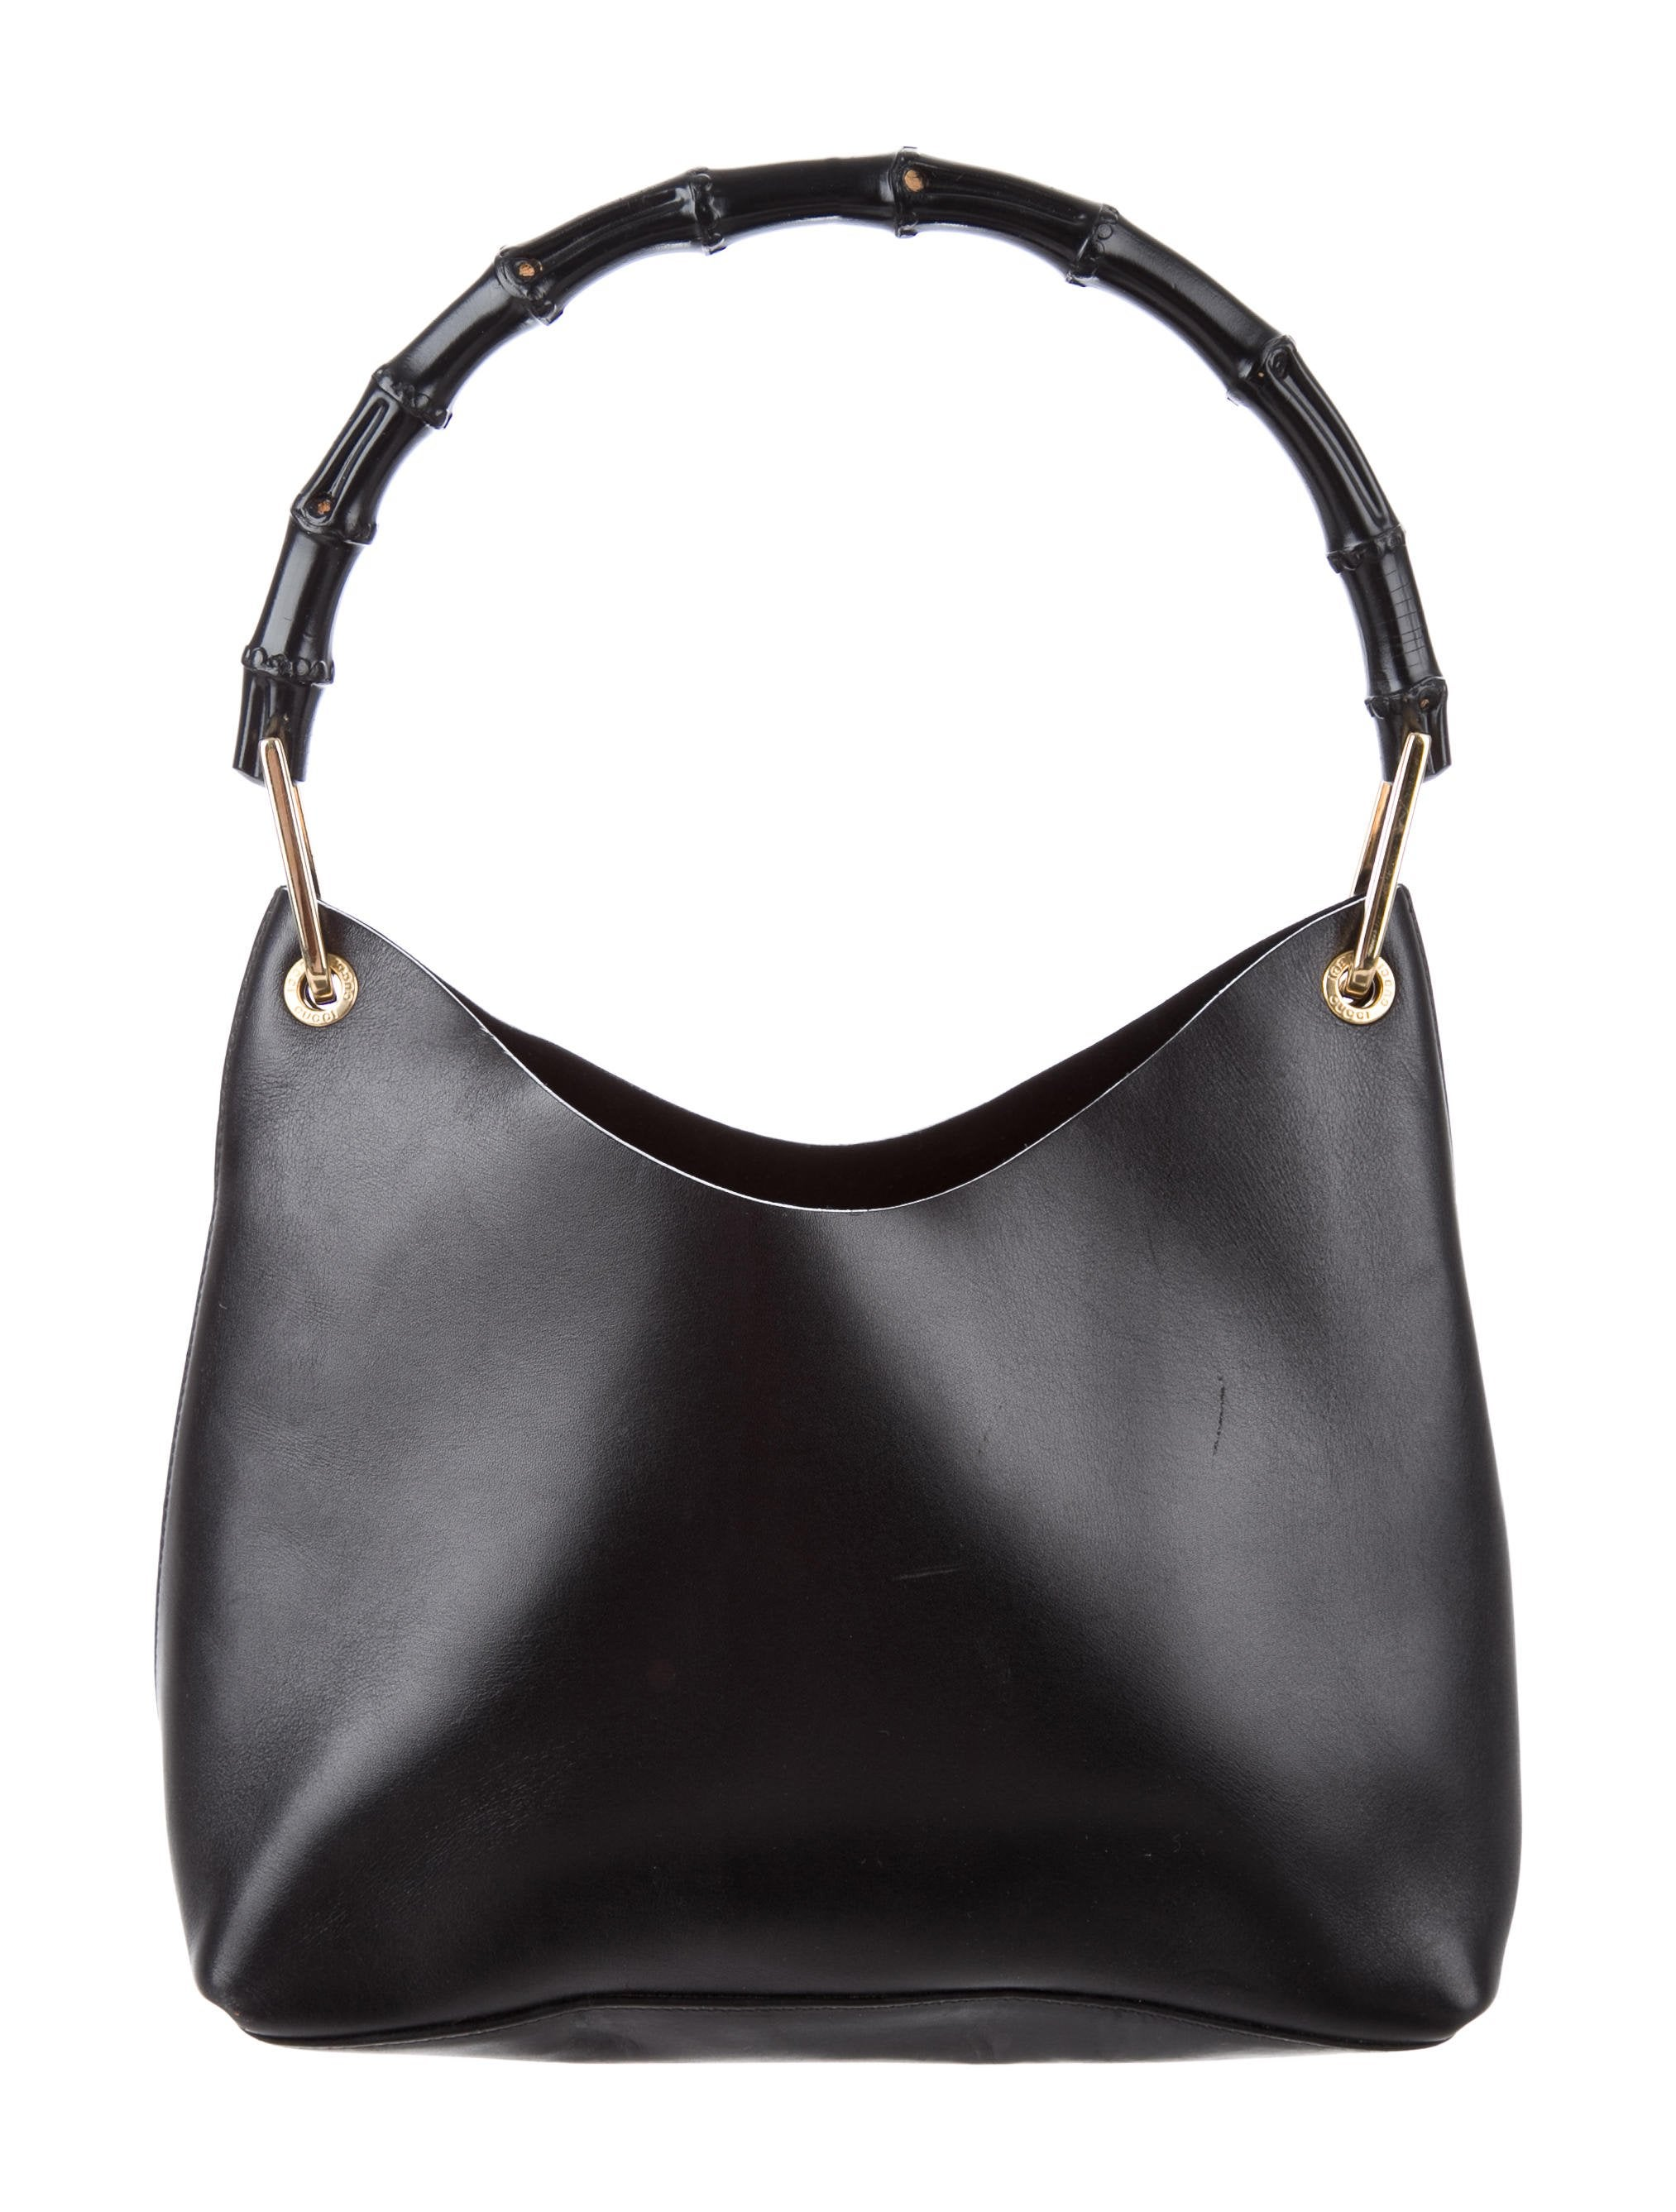 65807605efb43b Gucci Classic Leather Bag | Stanford Center for Opportunity Policy ...